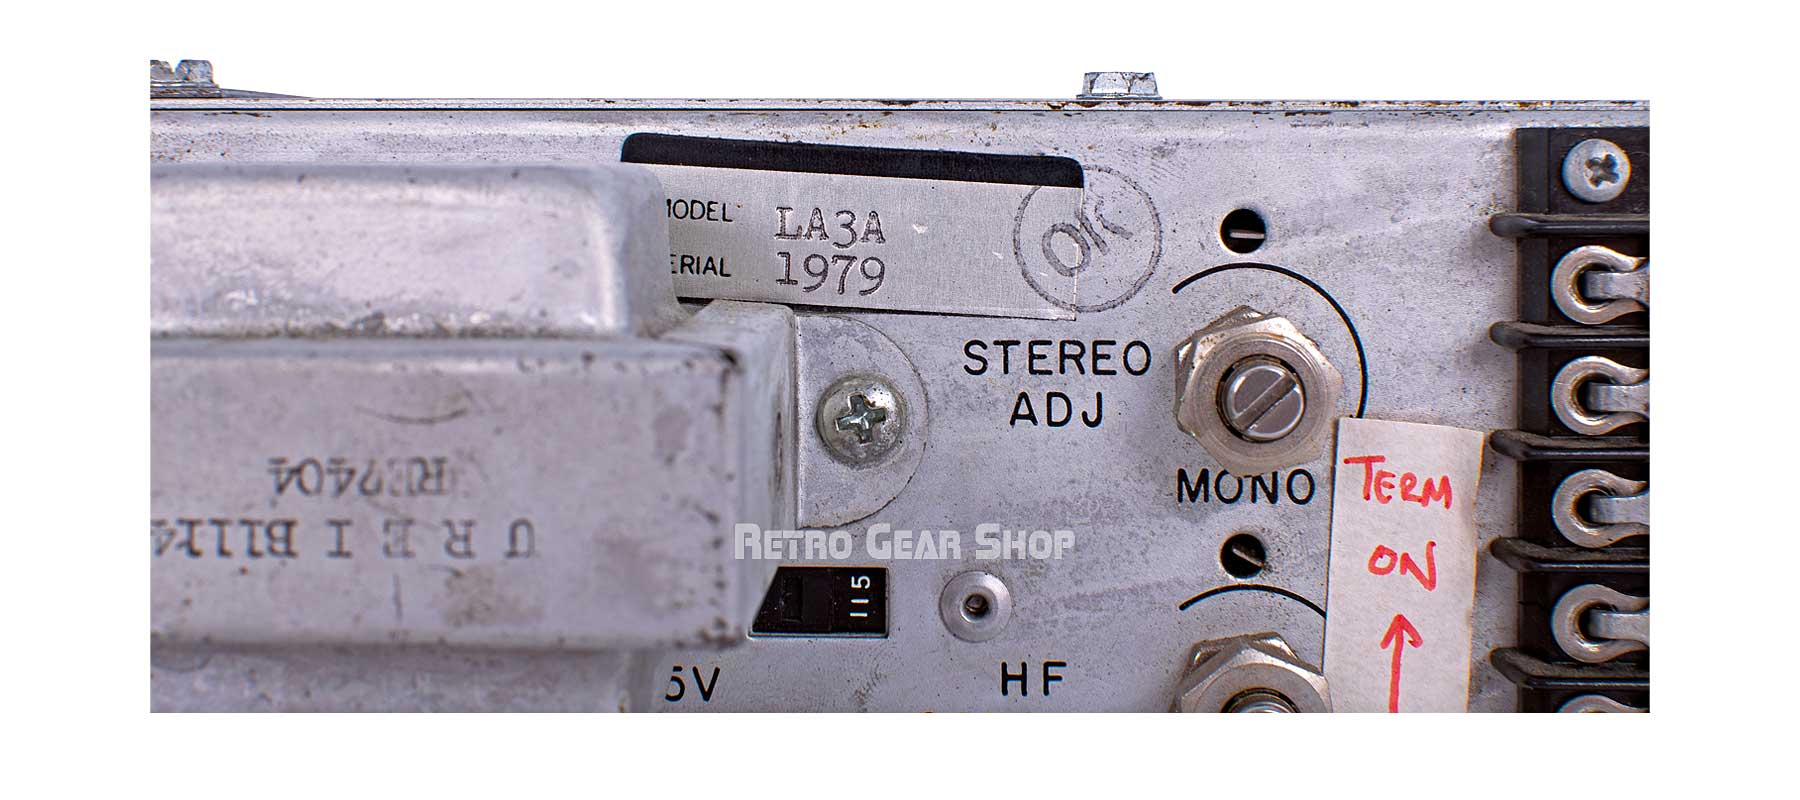 Urei LA-3A Stereo Pair Serial Number 1979